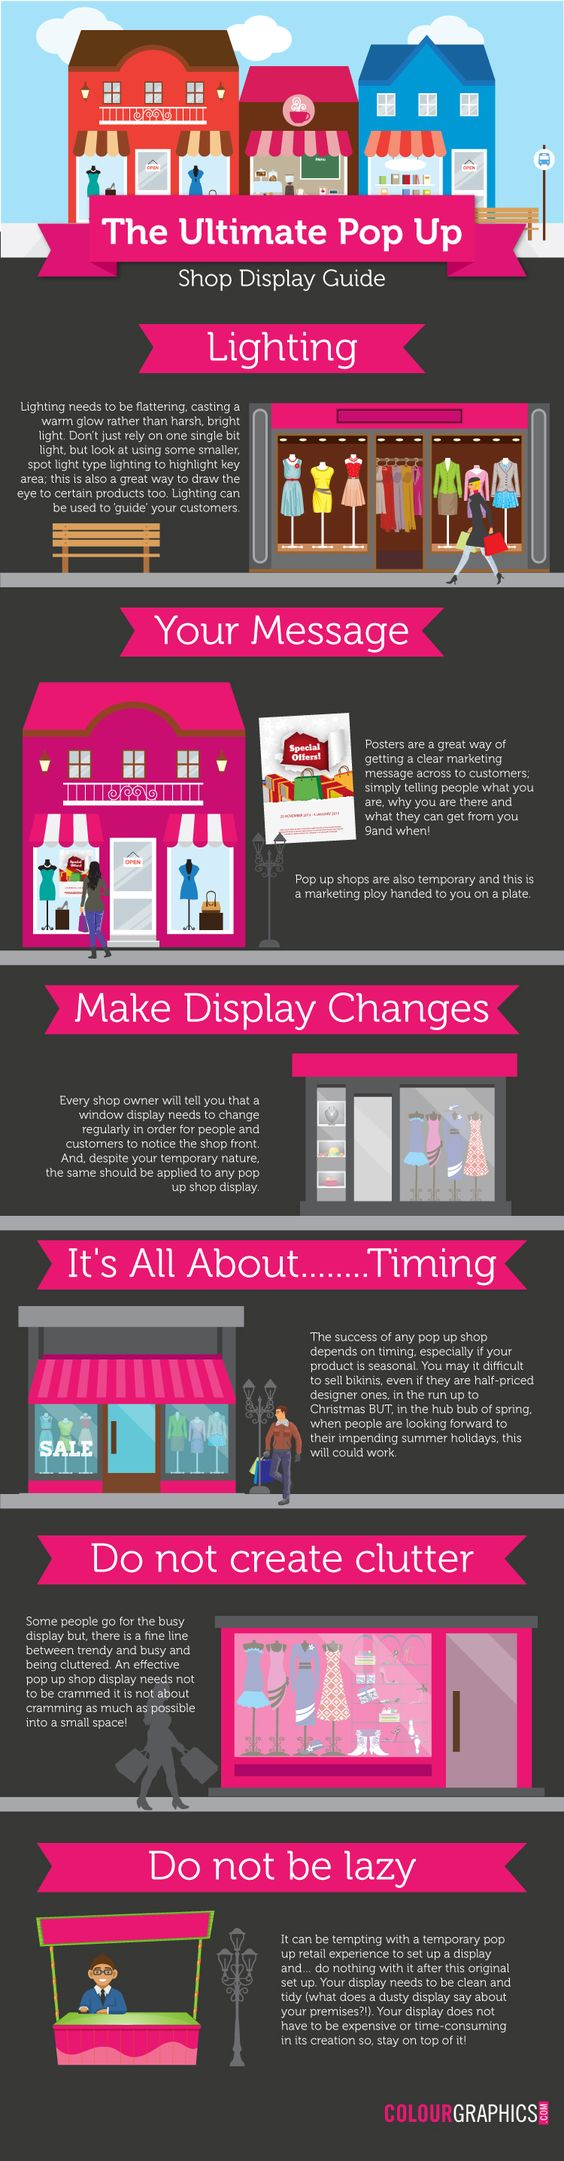 The Ultimate Pop Up Shop Display Guide #infographic #Business